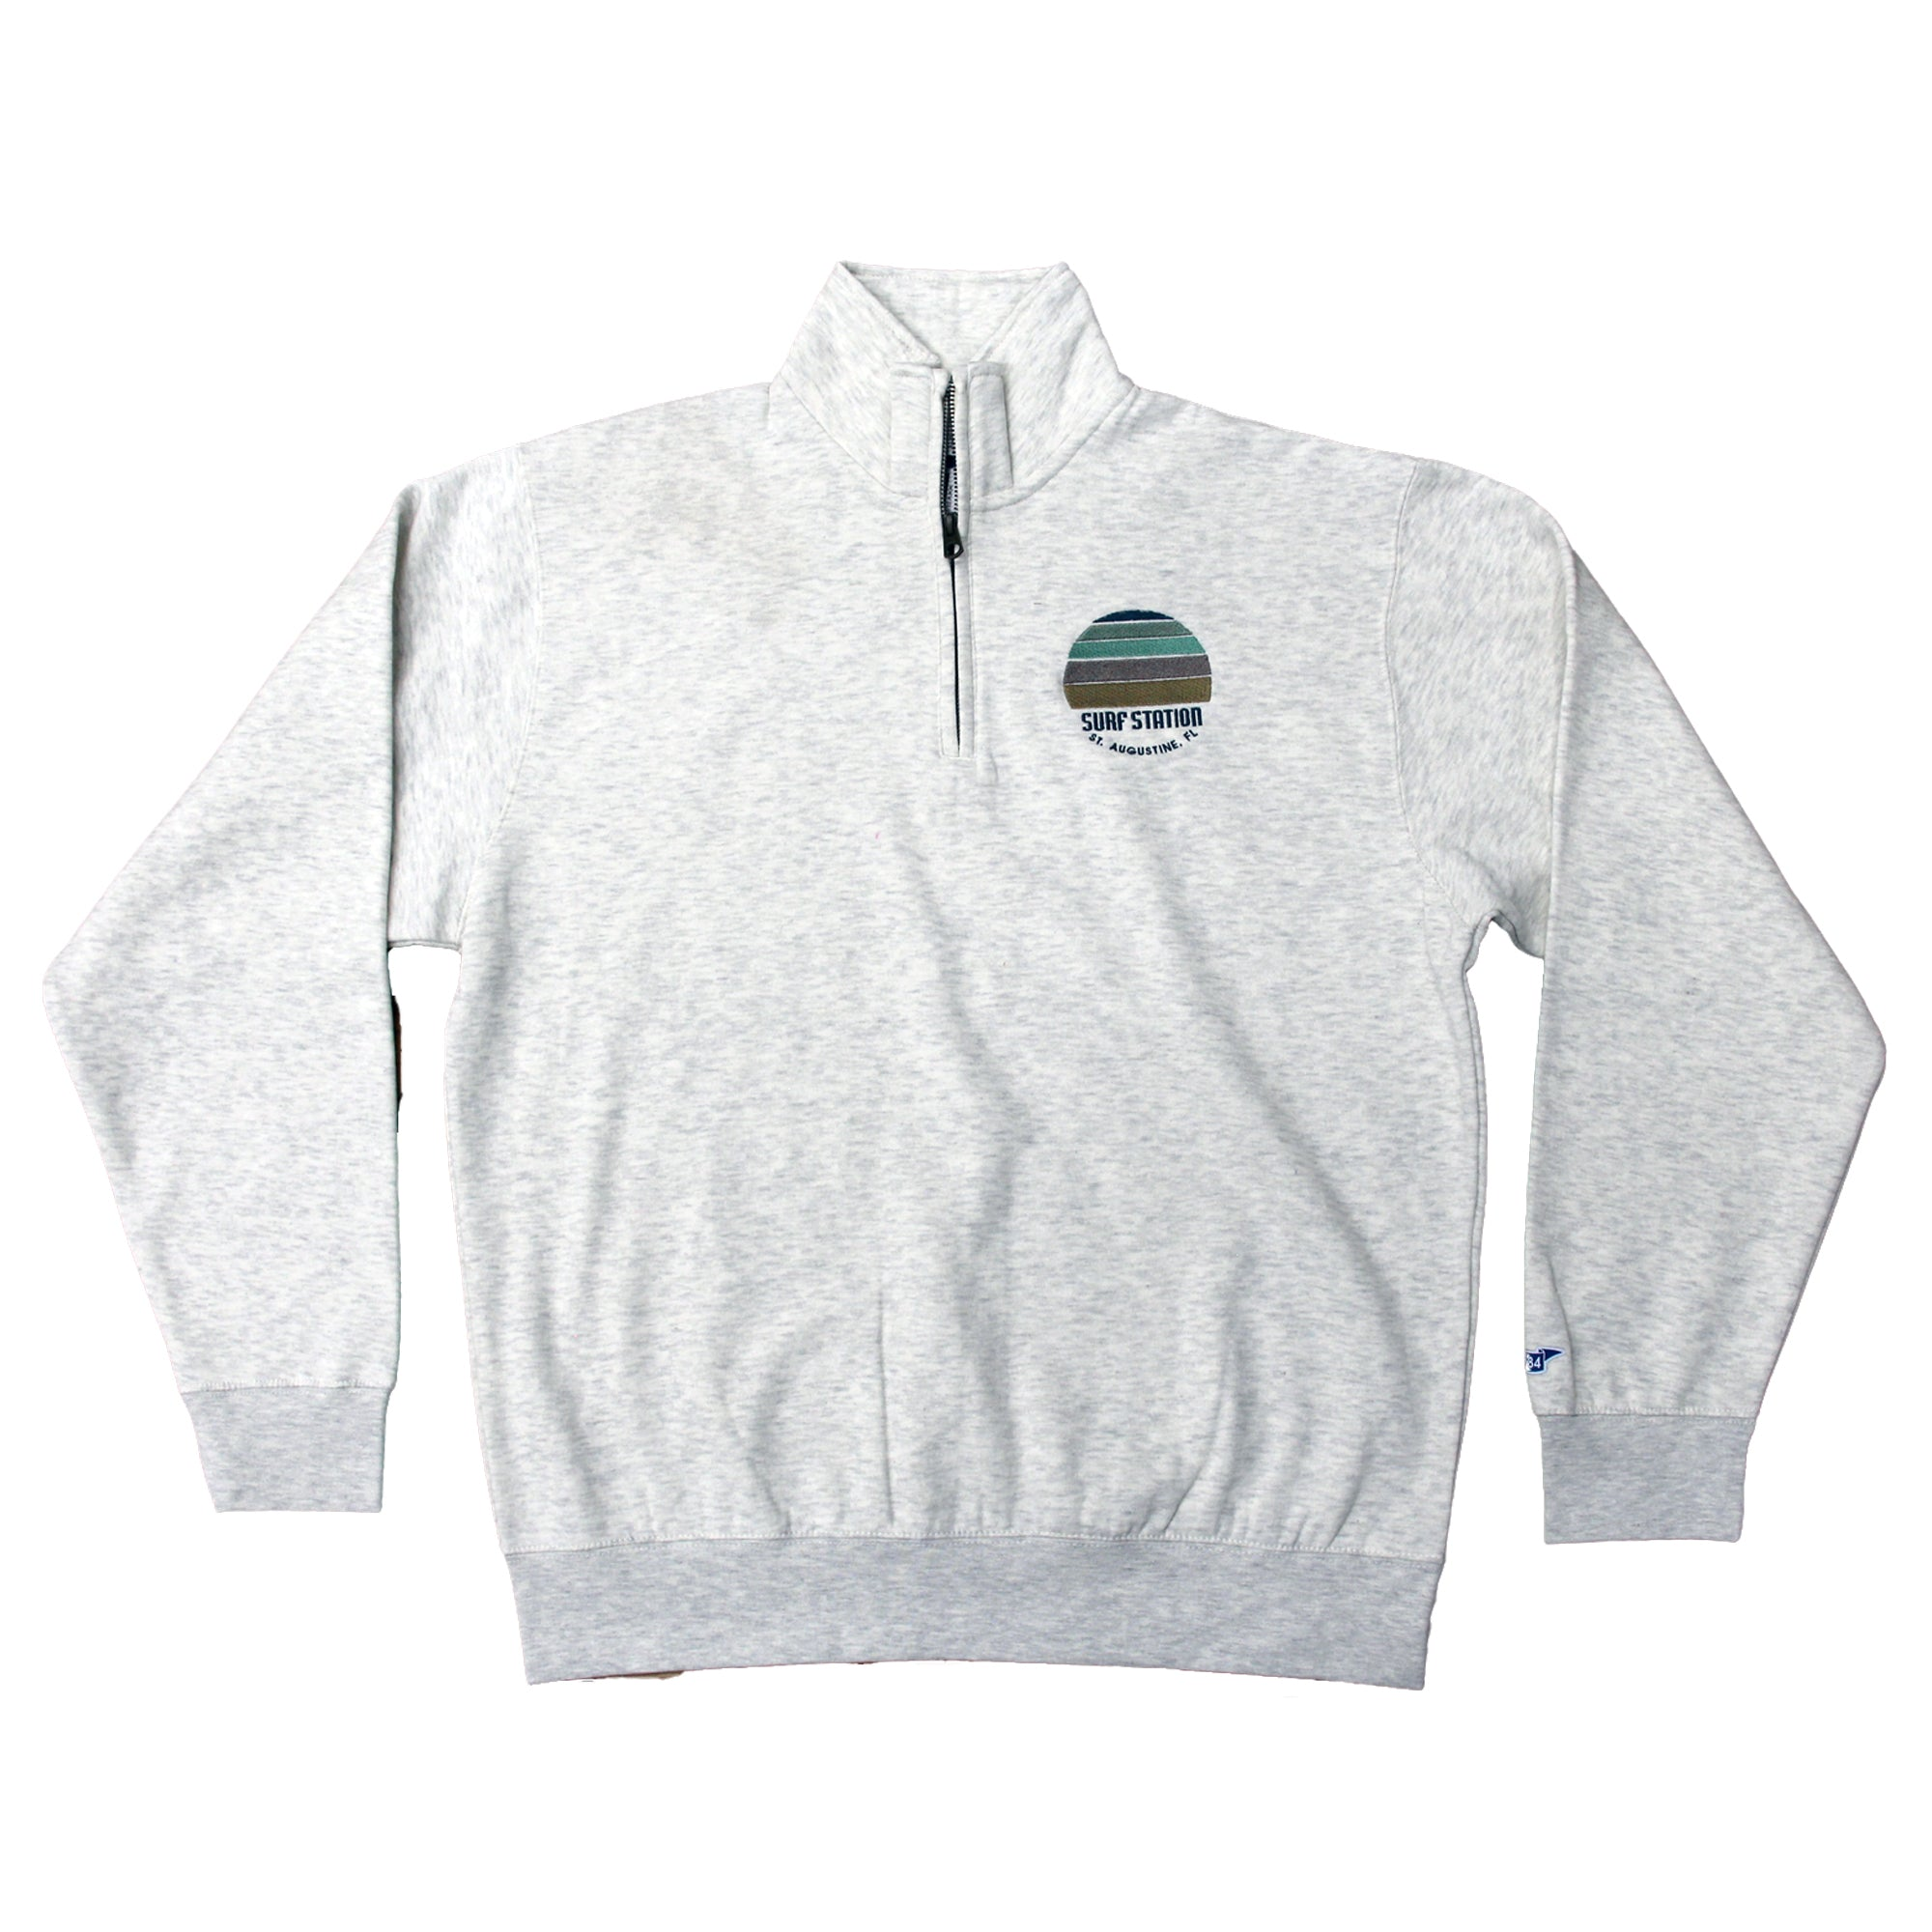 Surf Station Sunset Men's 1/4 Zip Fleece Pullover